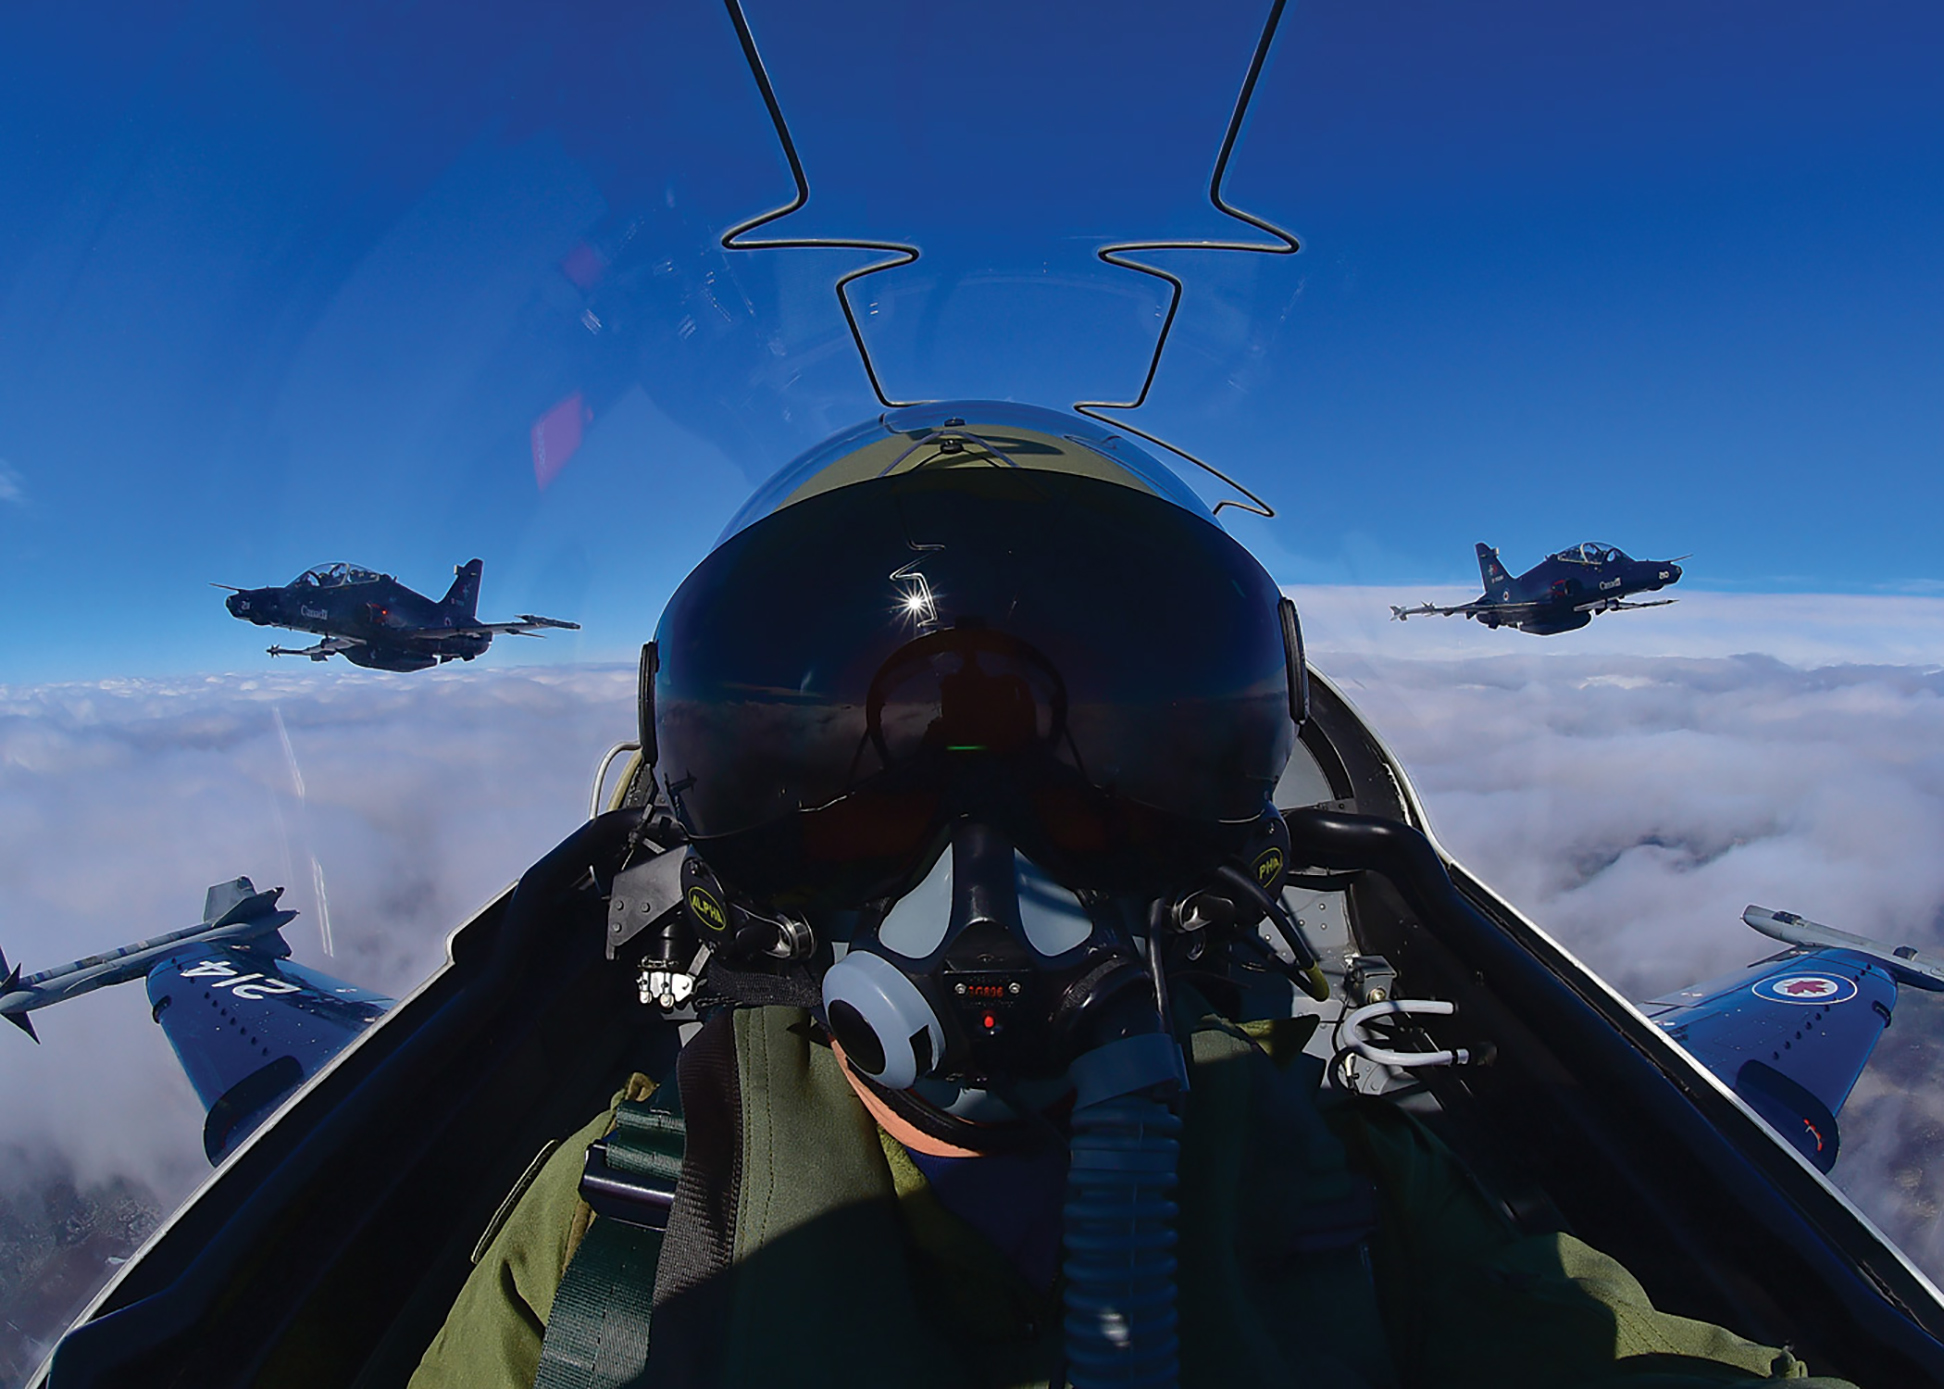 Above the clouds, a close-helmeted pilot in a canopied cockpit stares forward into the camera, while two aircraft follow and flank his.